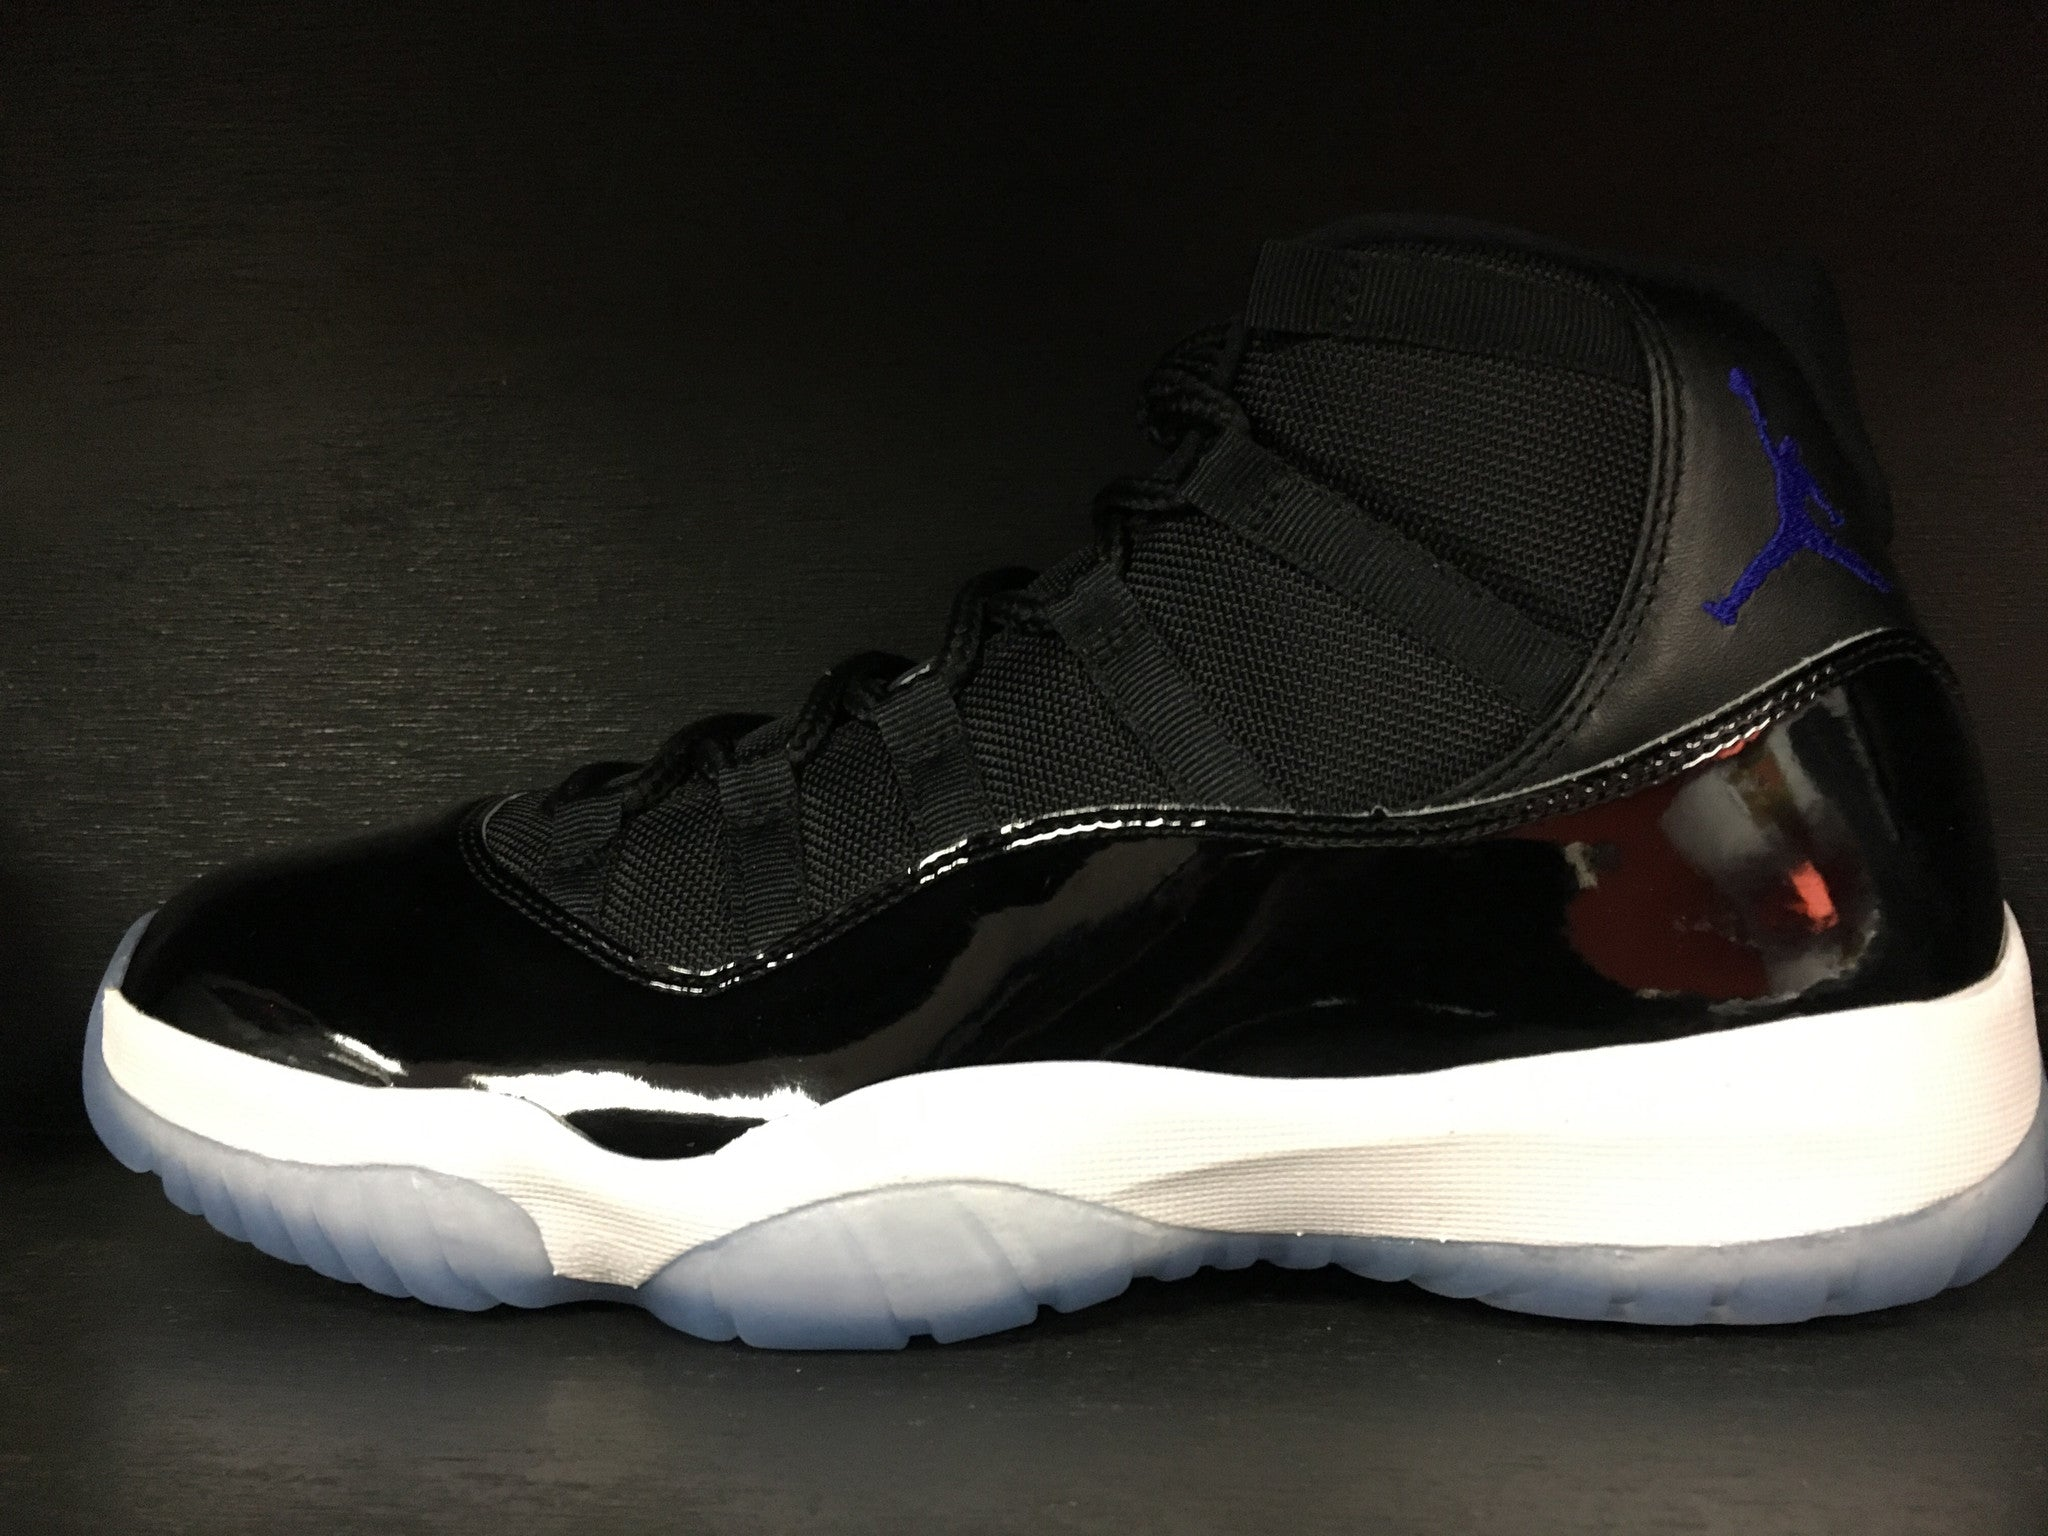 Air Jordan 11 Retro 'Space Jam' 2016